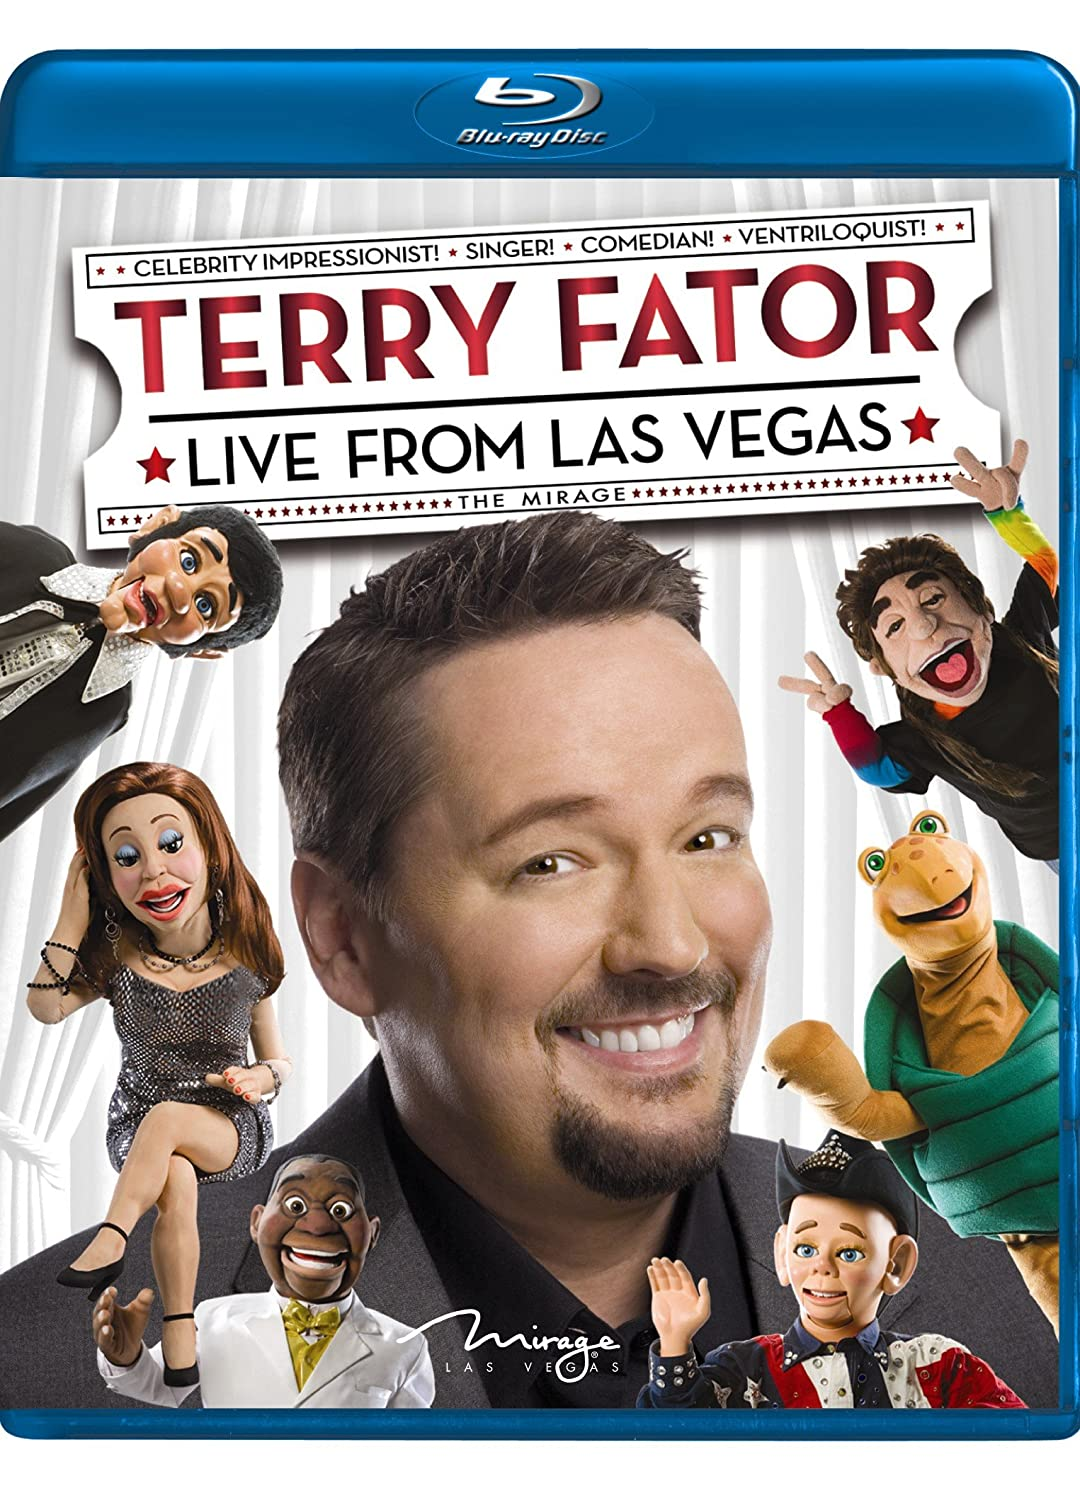 Terry Fator: Live from Blu-ray Las Tulsa Mall 70% OFF Outlet Vegas